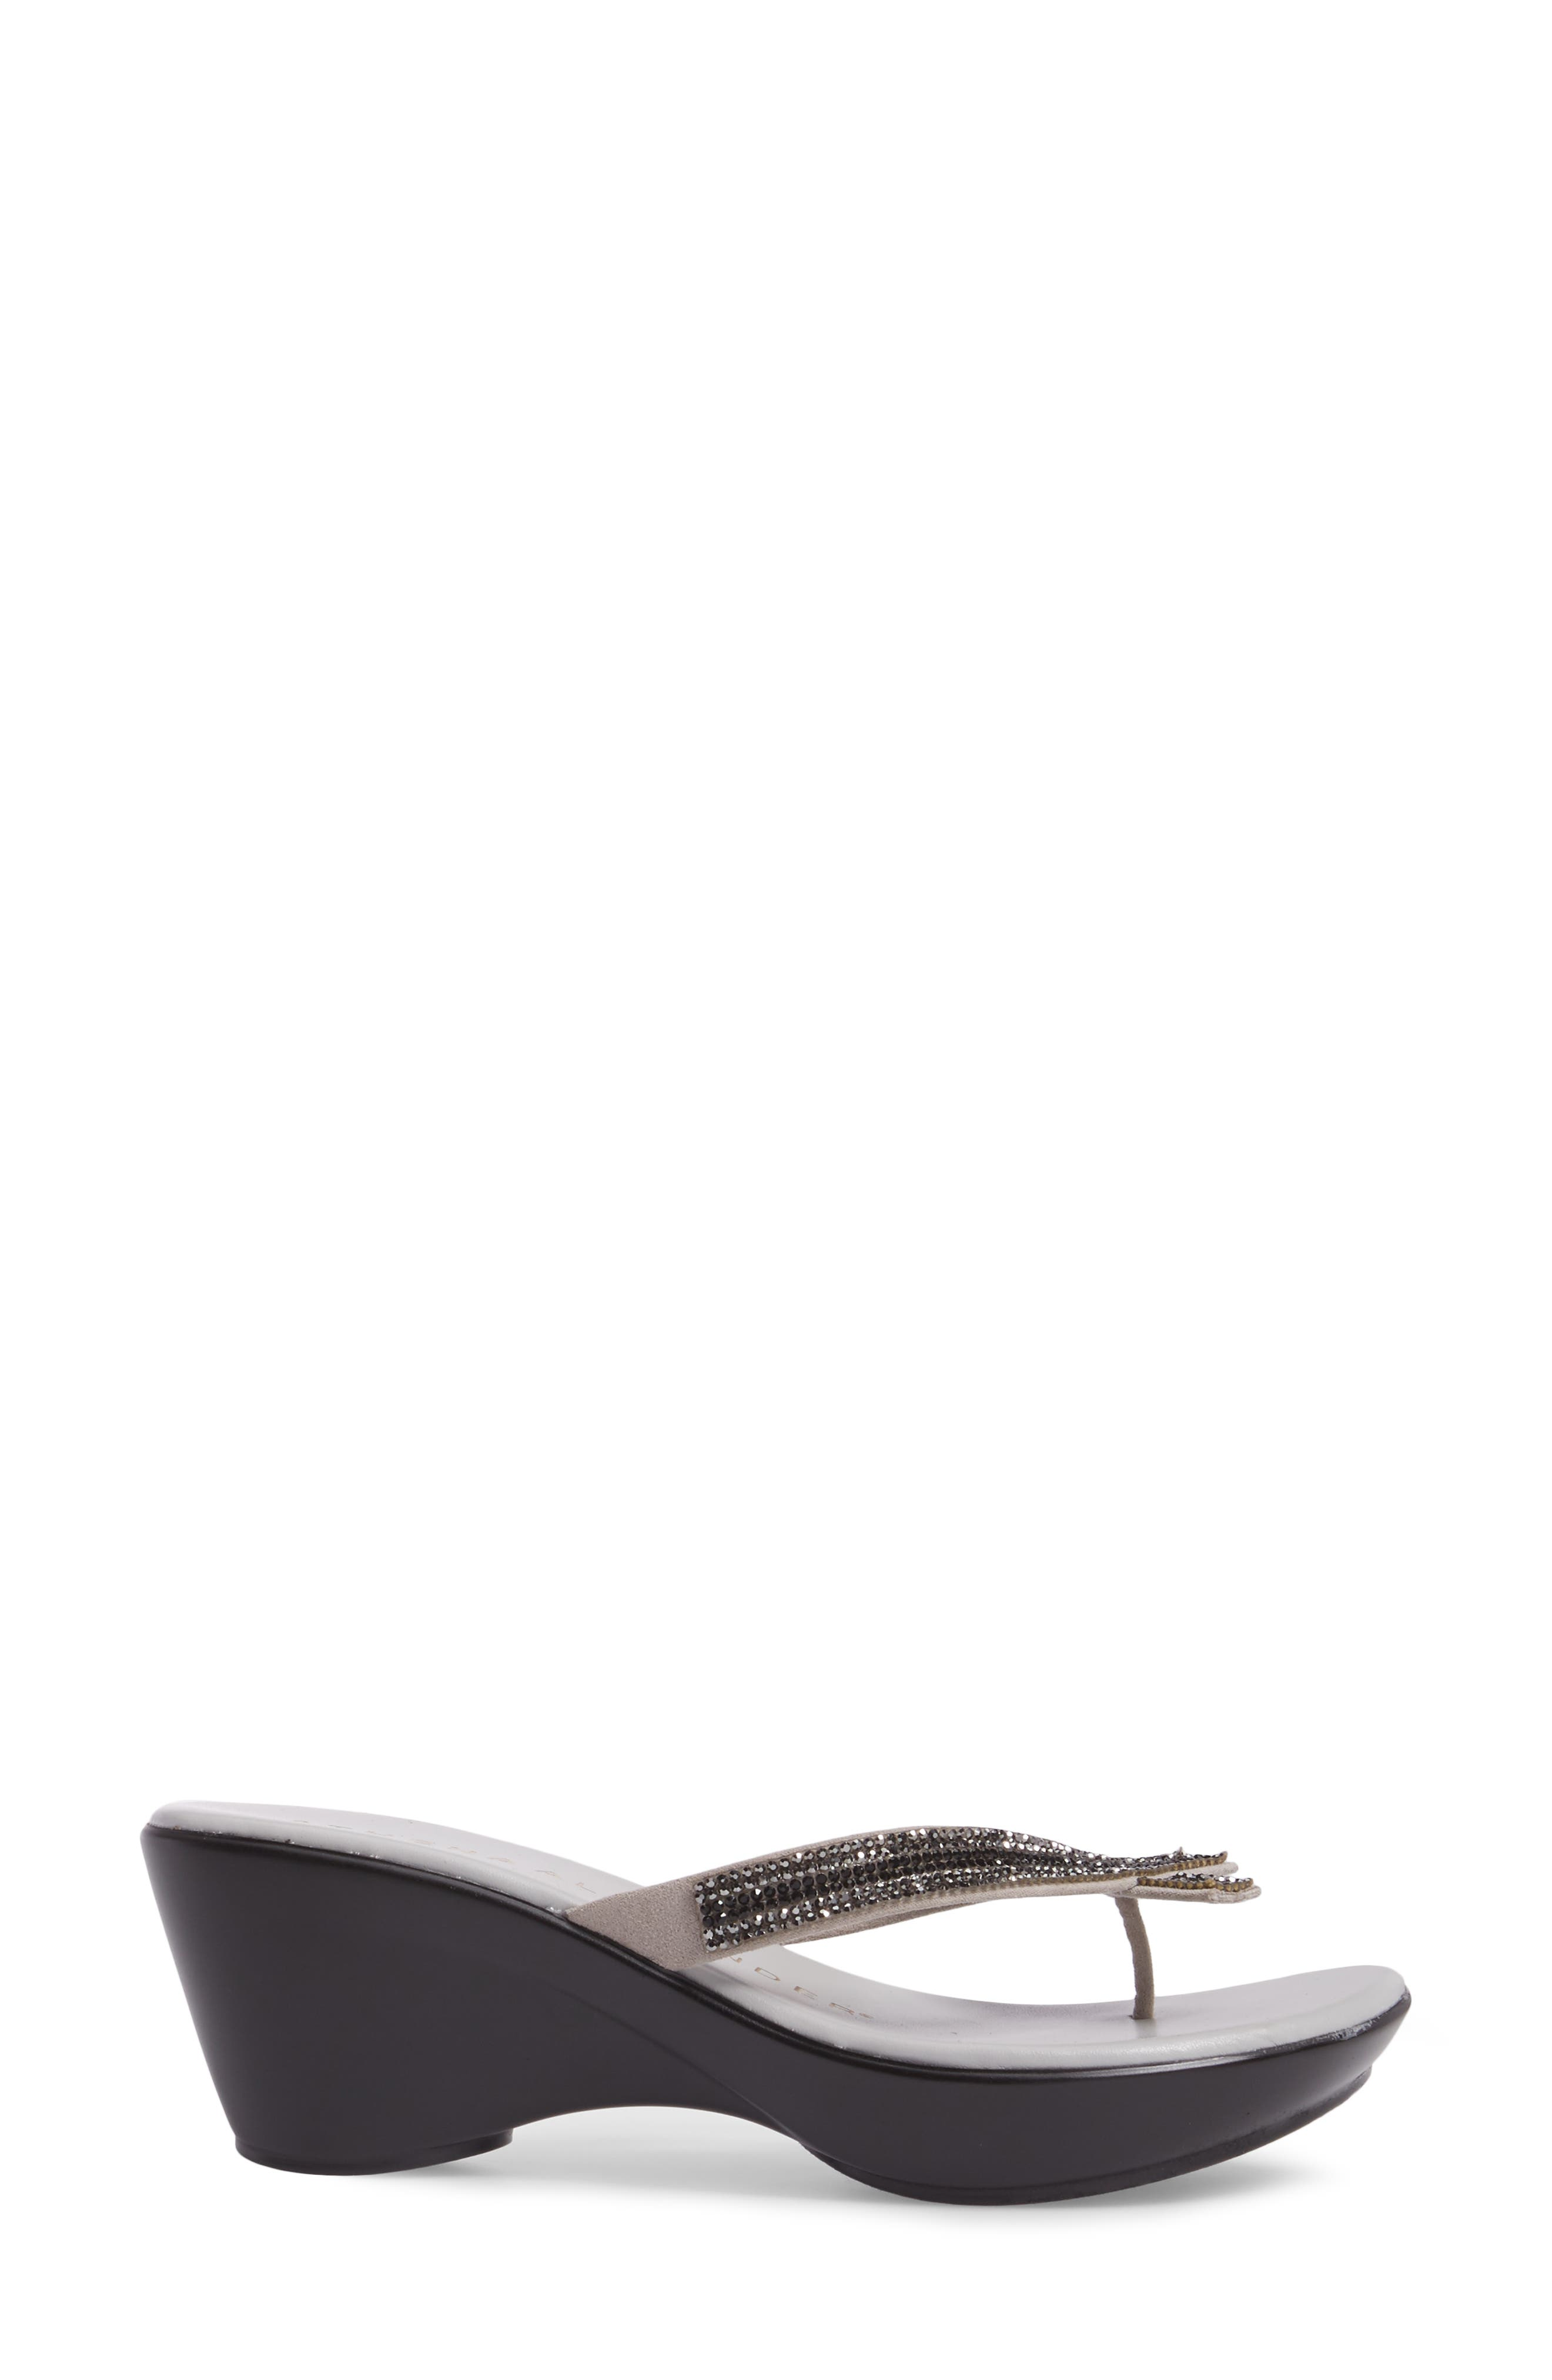 Sienna Wedge Sandal,                             Alternate thumbnail 3, color,                             Grey Synthetic